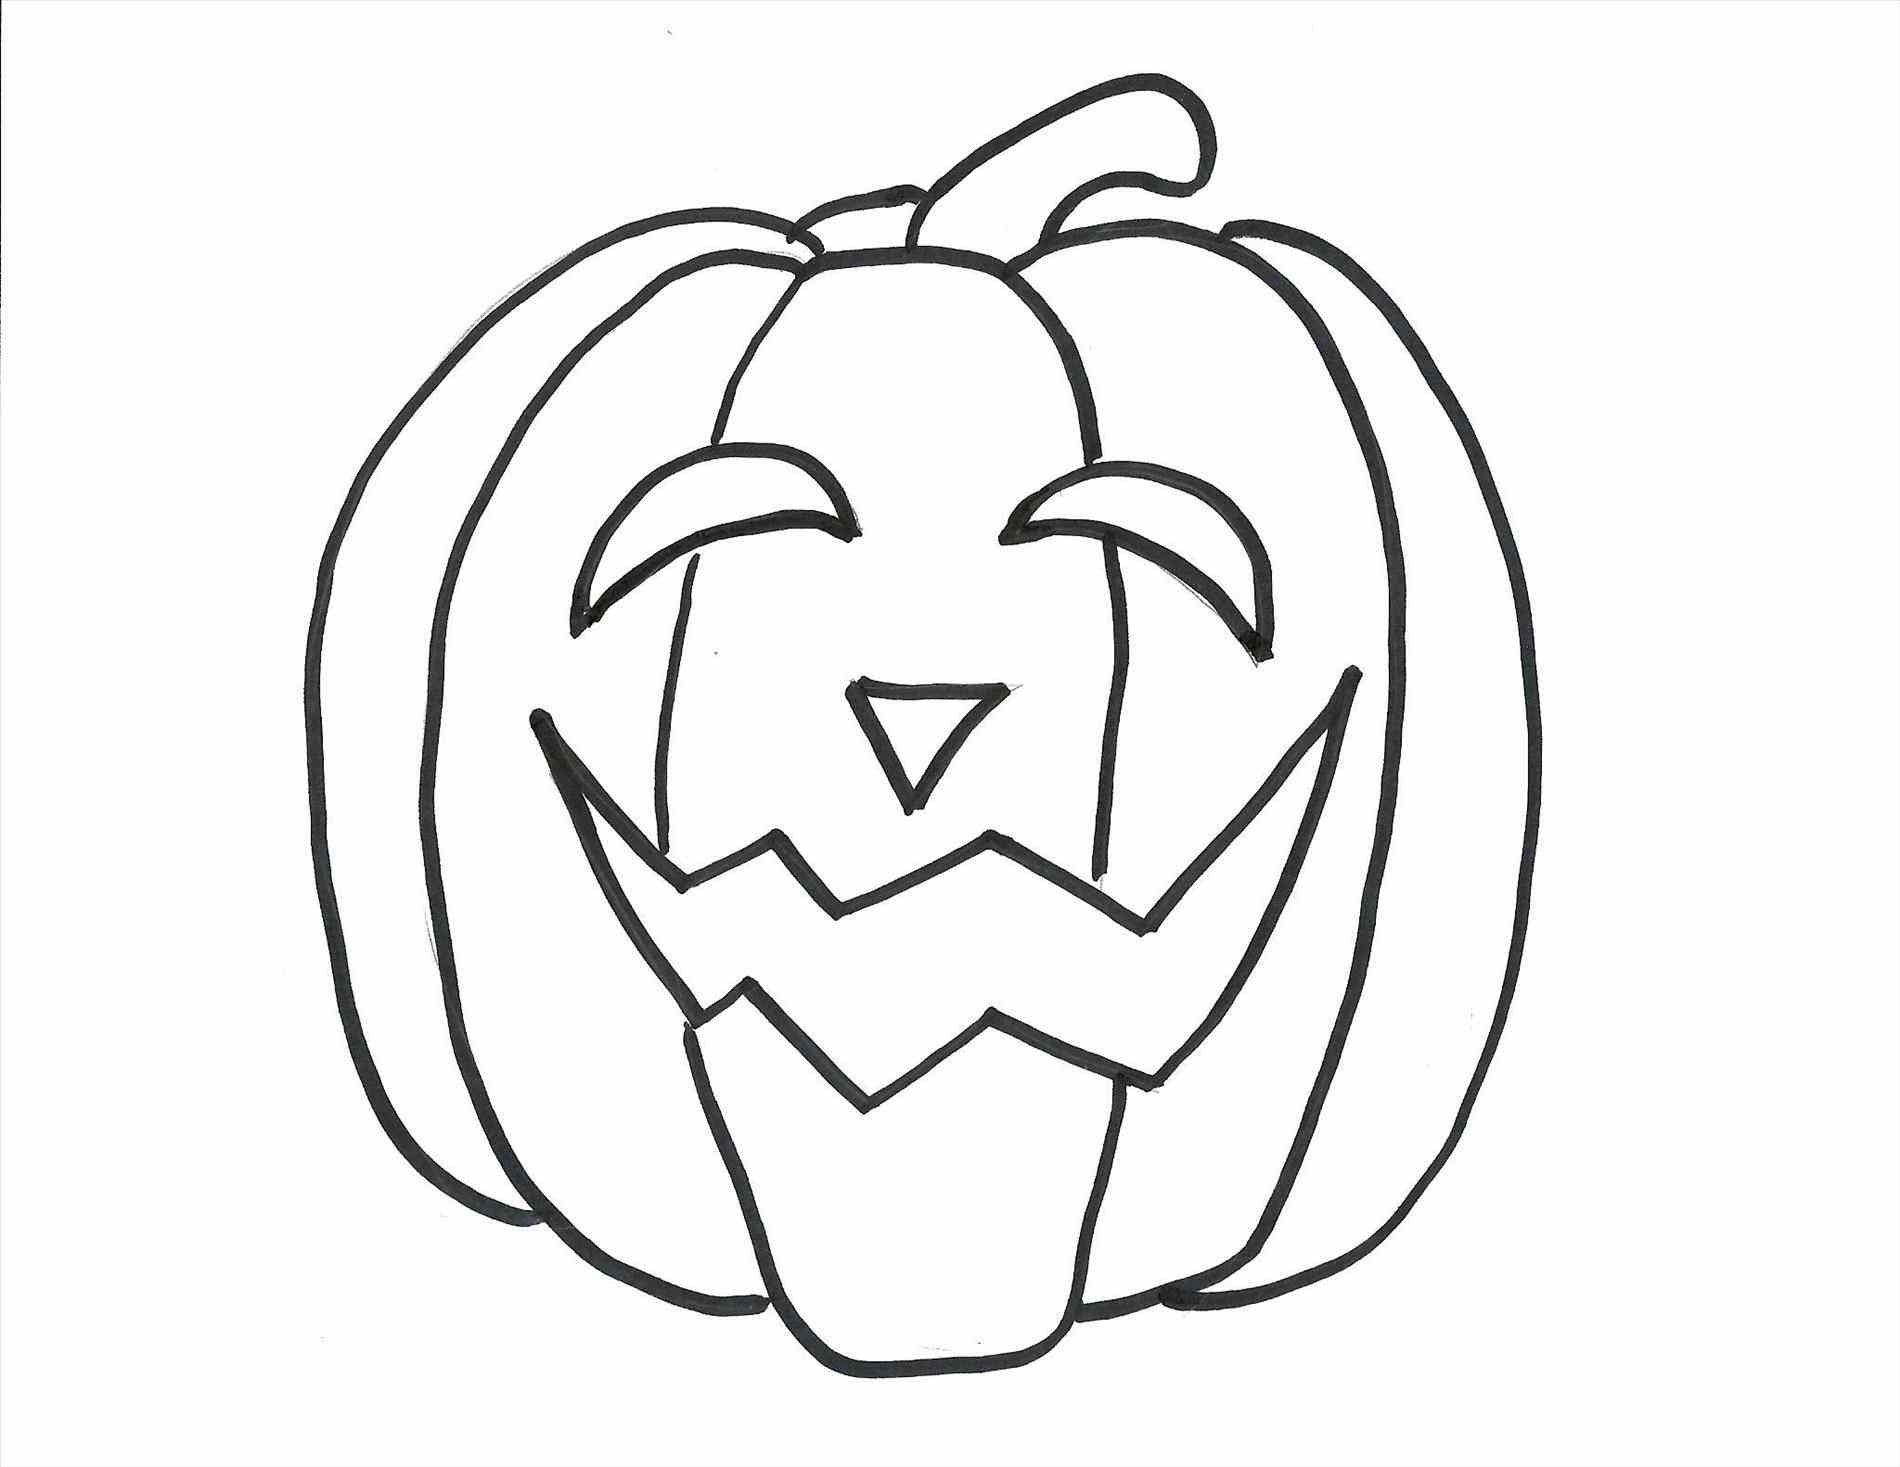 1900x1467 Funny Jack O Lanterns Coloring Page For Kids Freecolorngpages.co